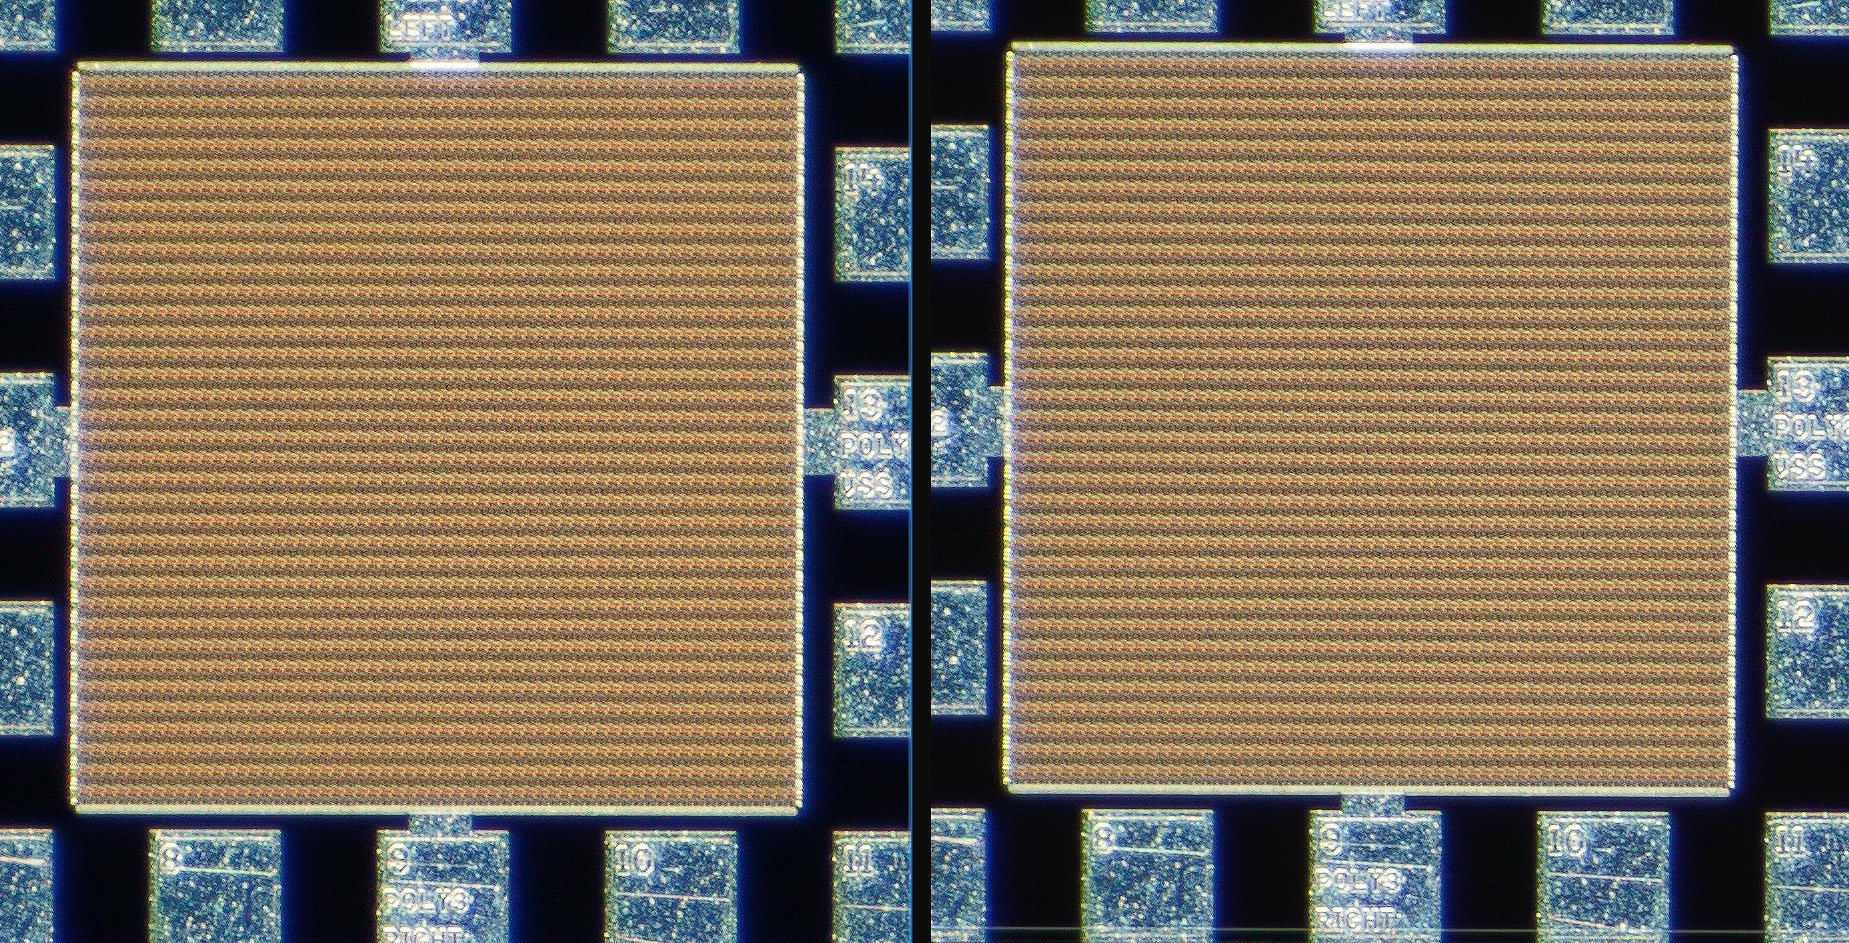 100% actual pixel far corner crop with the Nikon Measuring Microscope 5x on the left and the 5xA on the right. Click on the image to see the full size version in a new window.